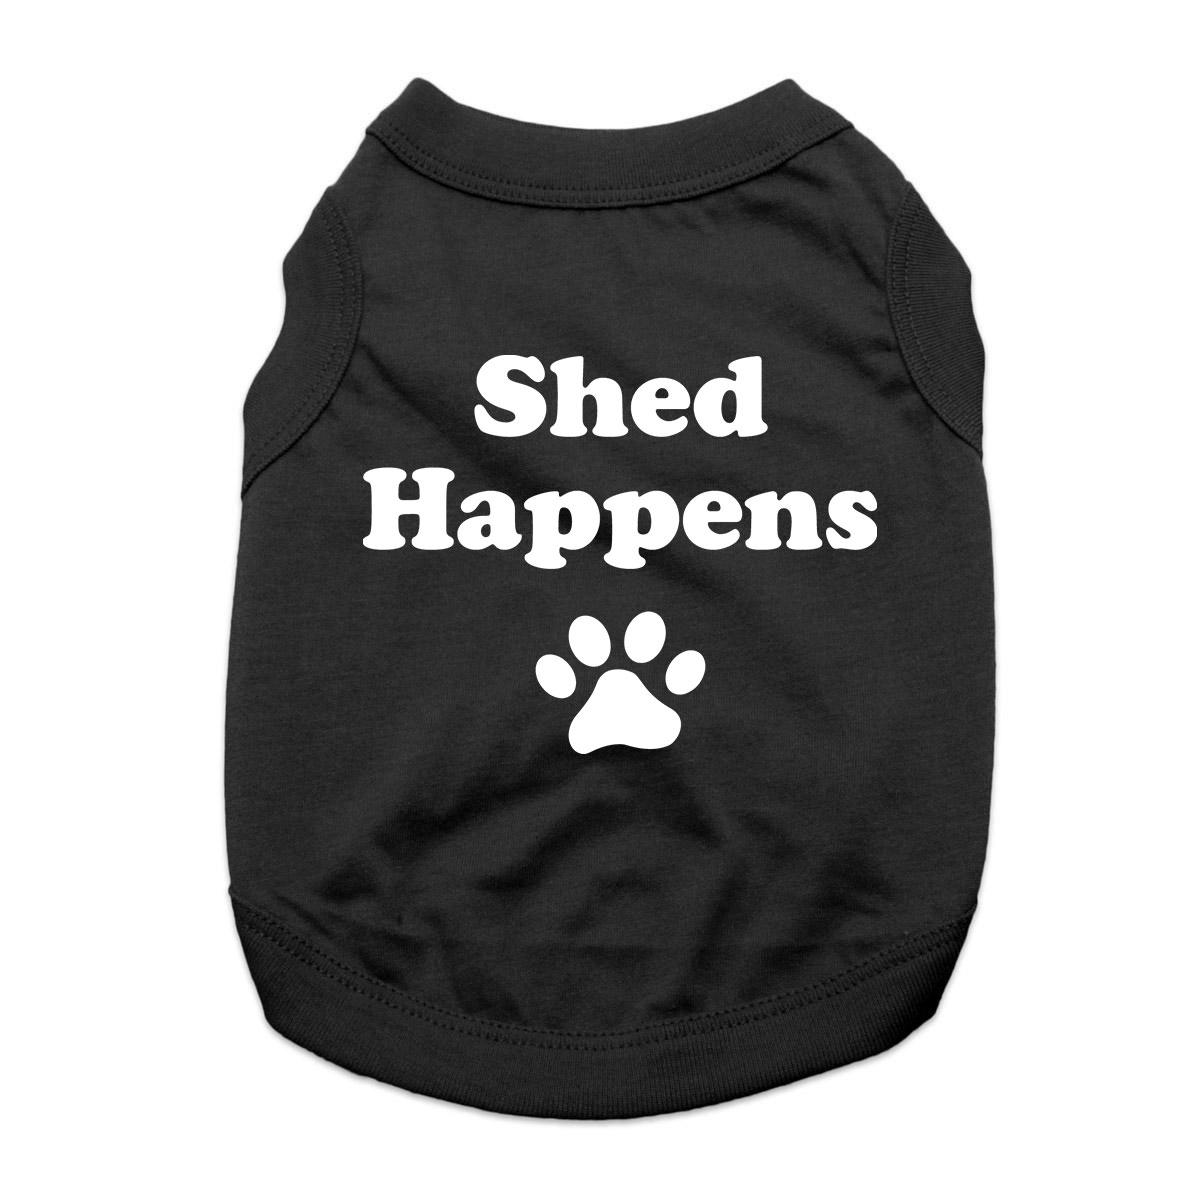 Shed Happens Dog Shirt - Black